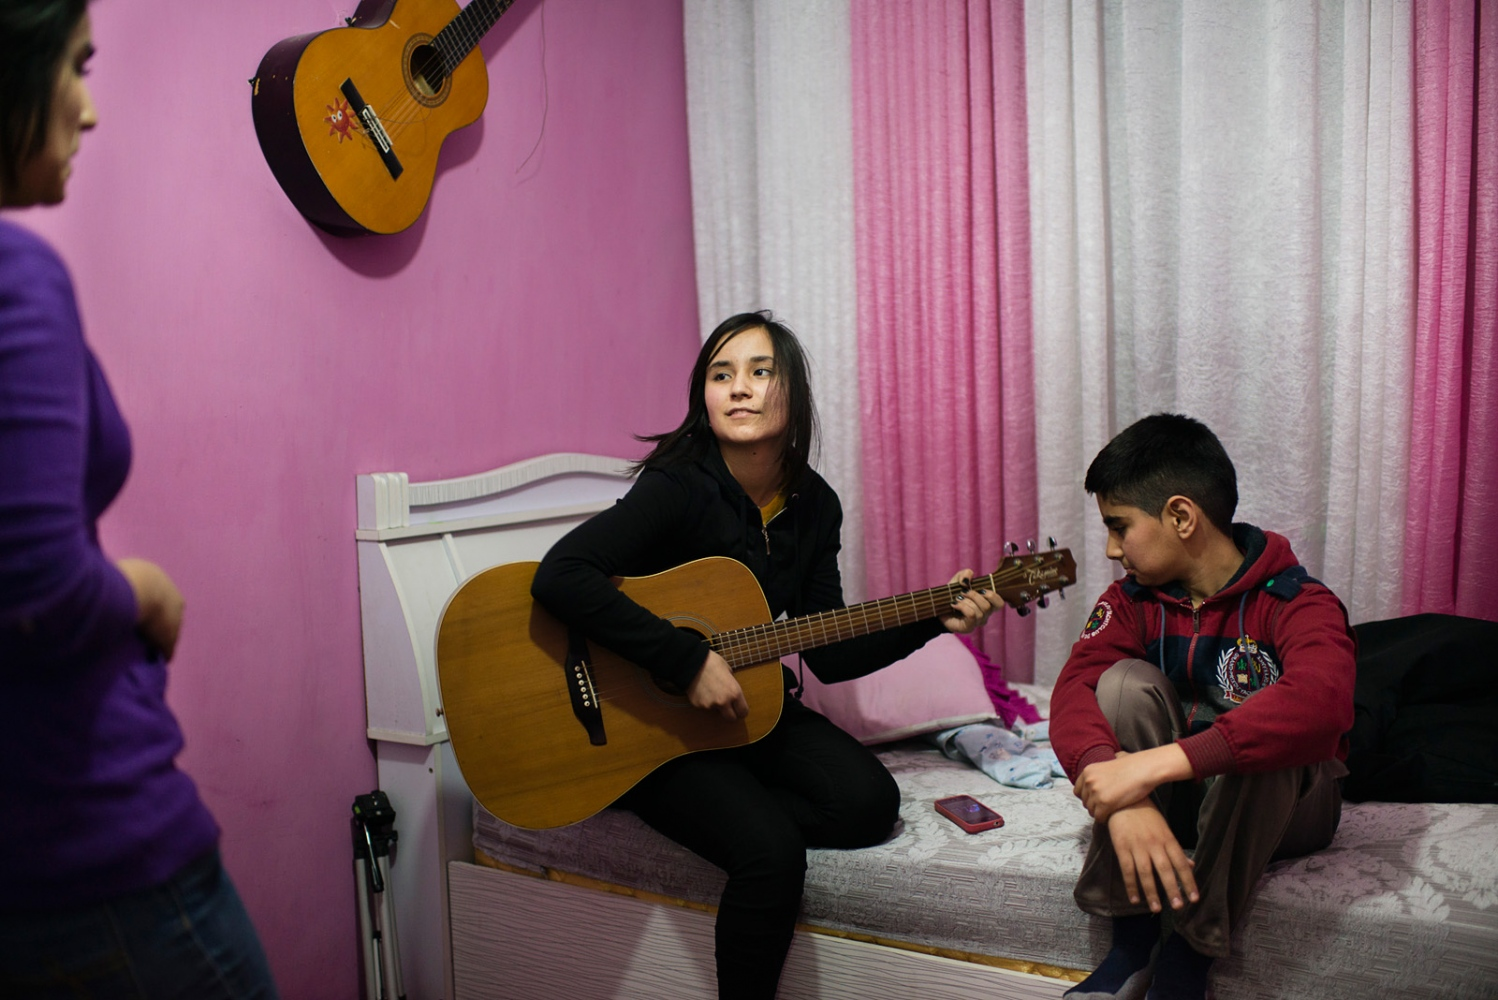 KABUL, AFGHANISTAN | 2015-01-06 | Zhala (16) plays a cover of Avril Lavigne's song in her room while her younger brother and older sister sing along.